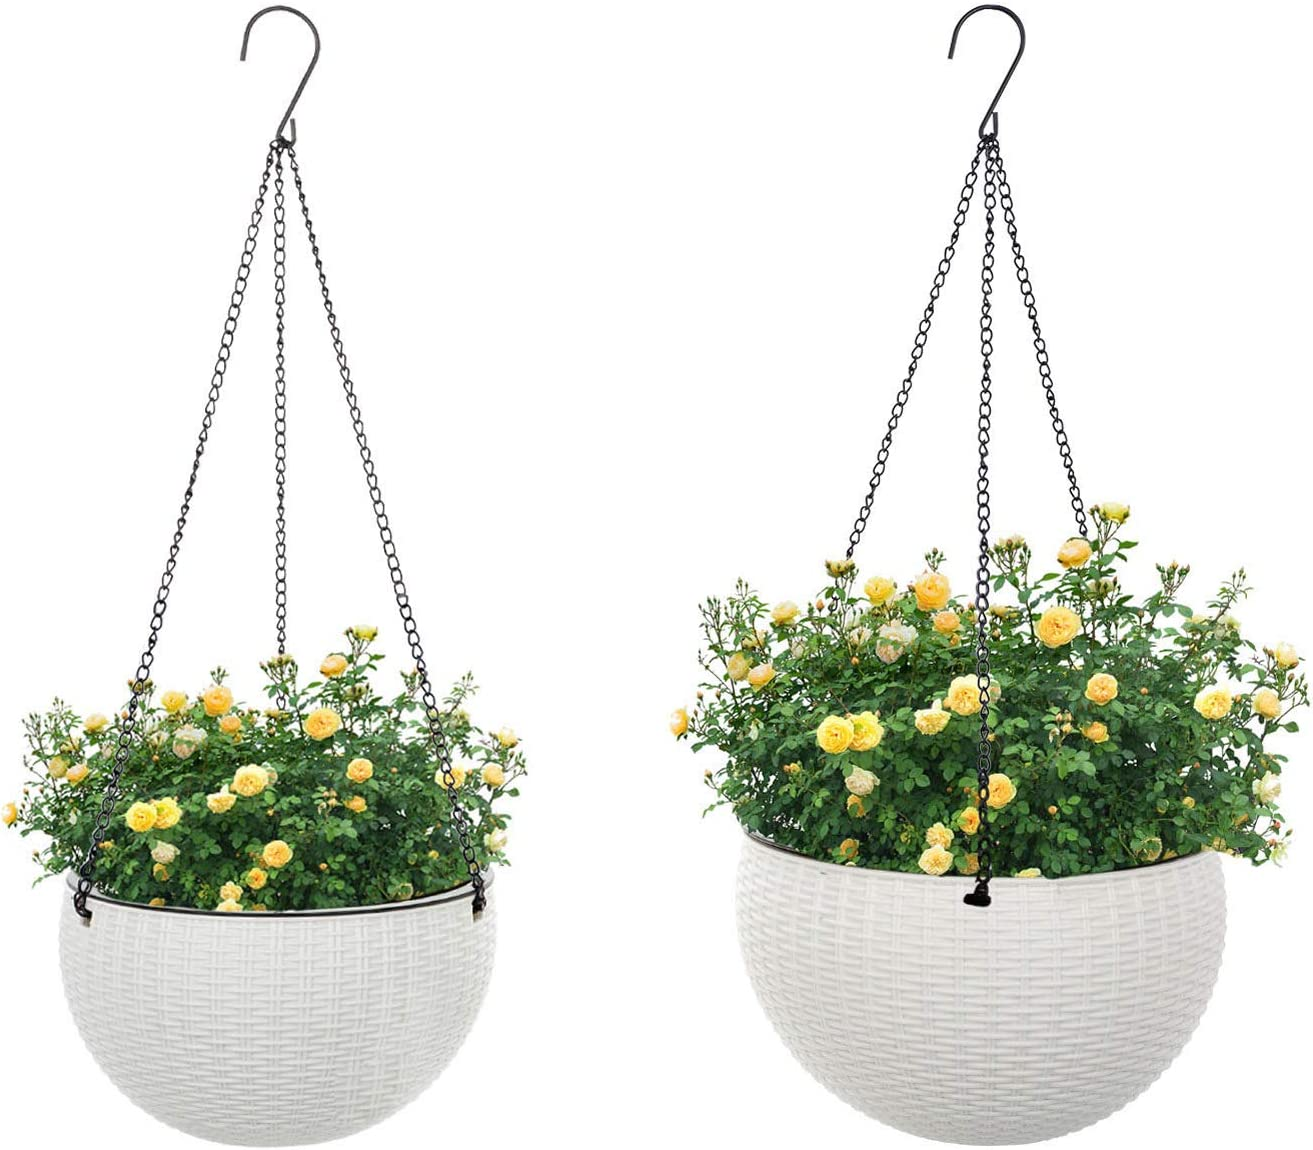 GROWNEER Max 63% OFF 2 Packs 10.2 Many popular brands and 8.8 wit Basket Hanging Planters Inches